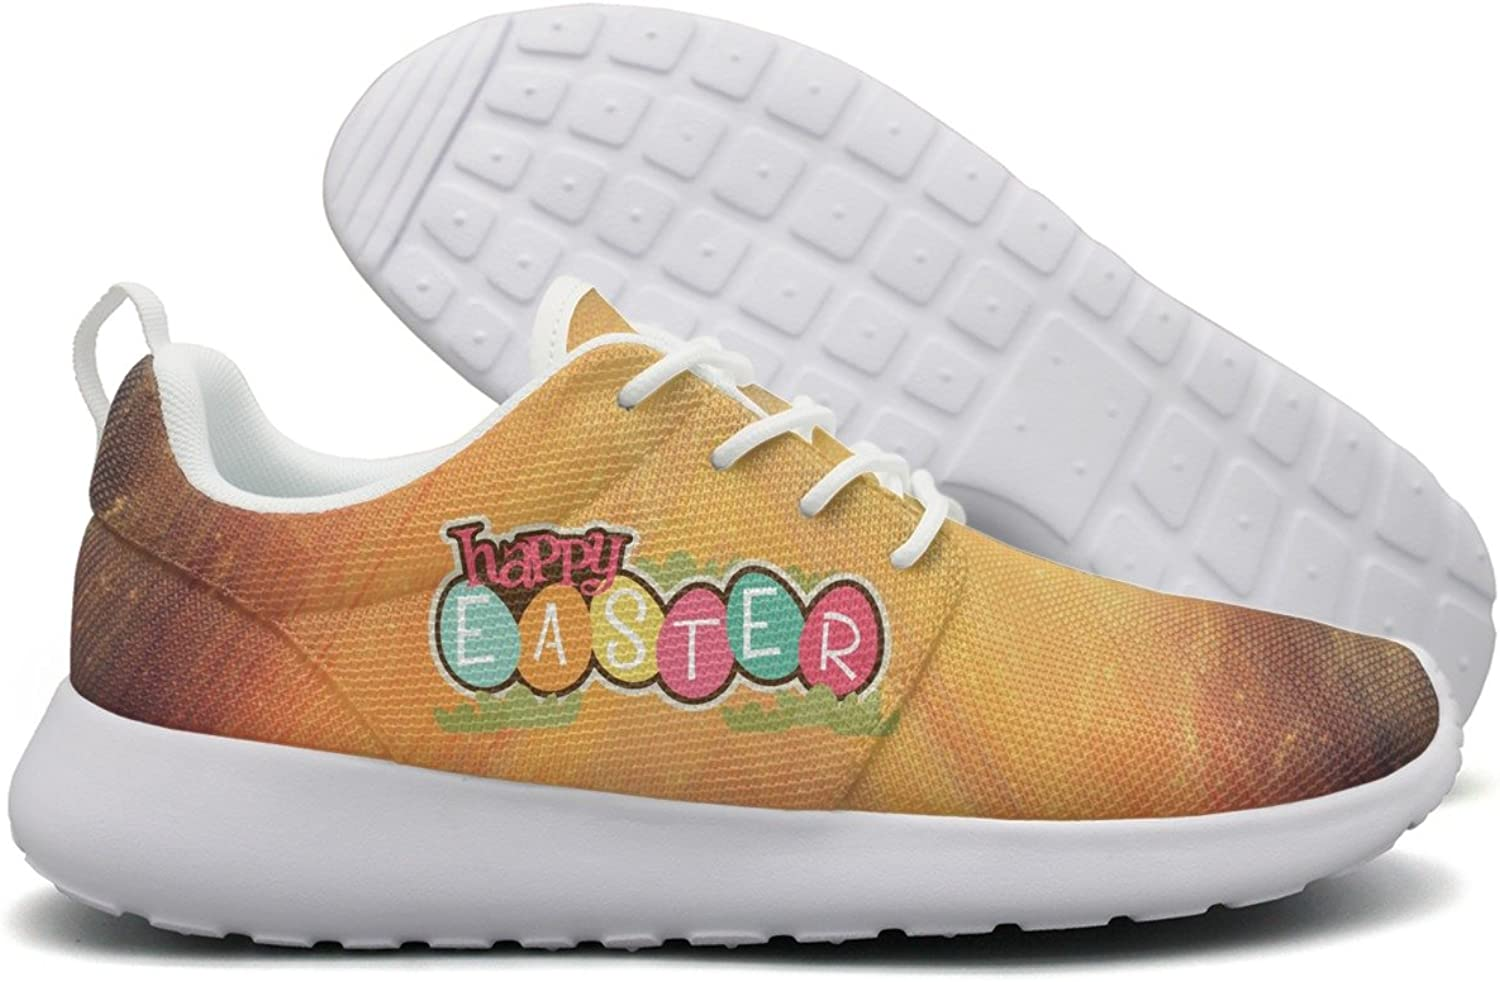 Happy Easter Day 2018 Womens Flex Mesh Womans Running shoes